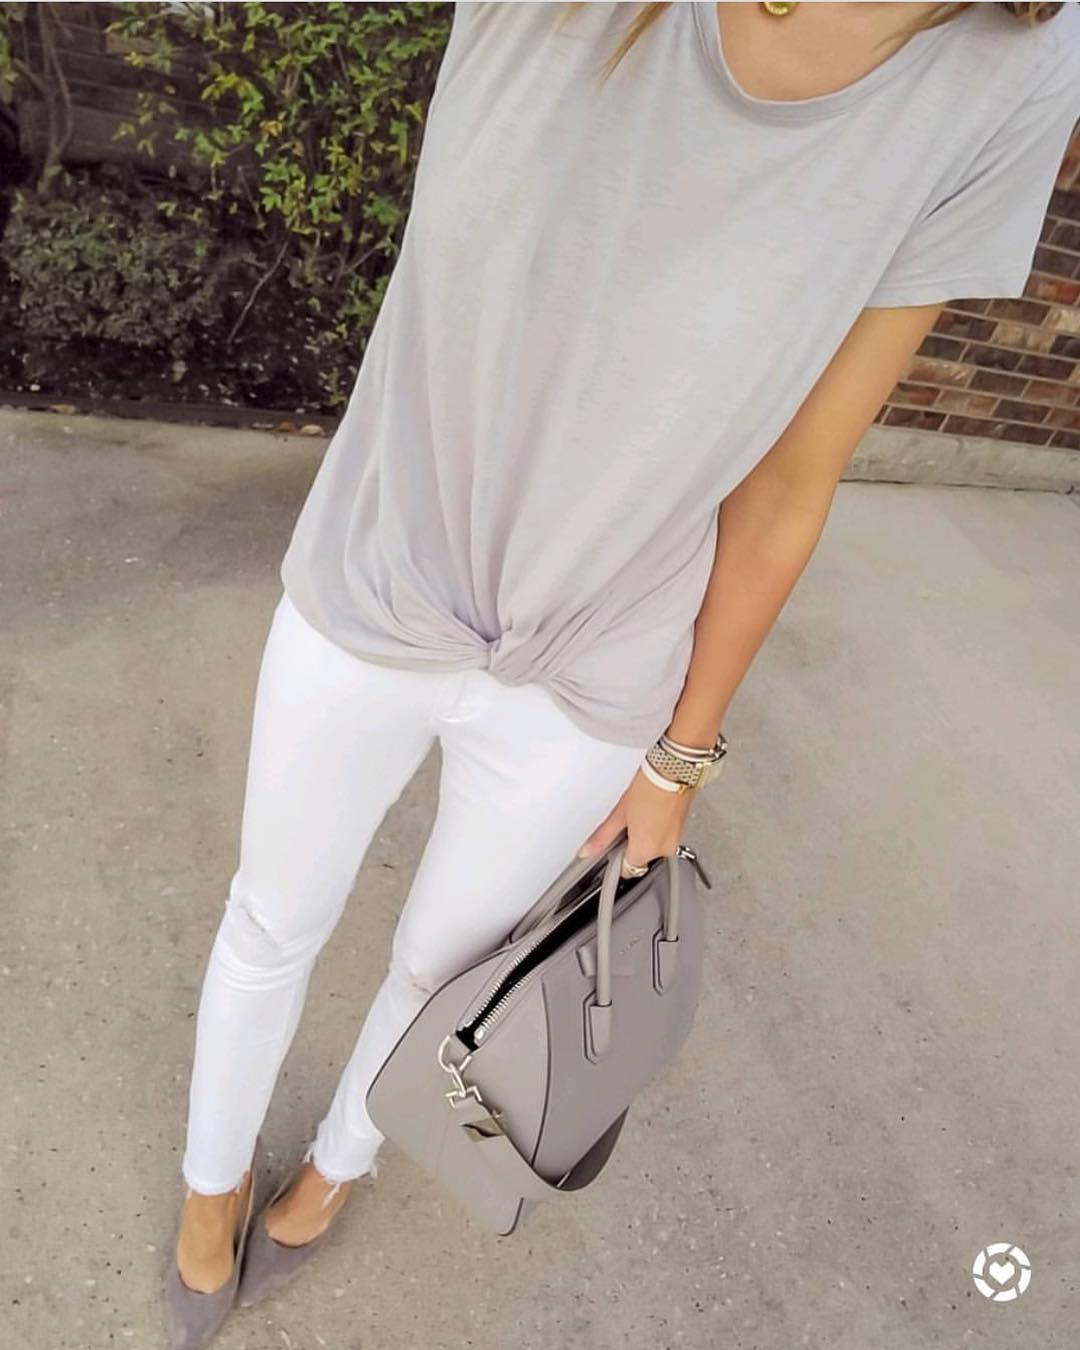 Summer Monochrome Essentials: Cream Grey Tee, White Skinny Jeans And Grey Pumps 2020